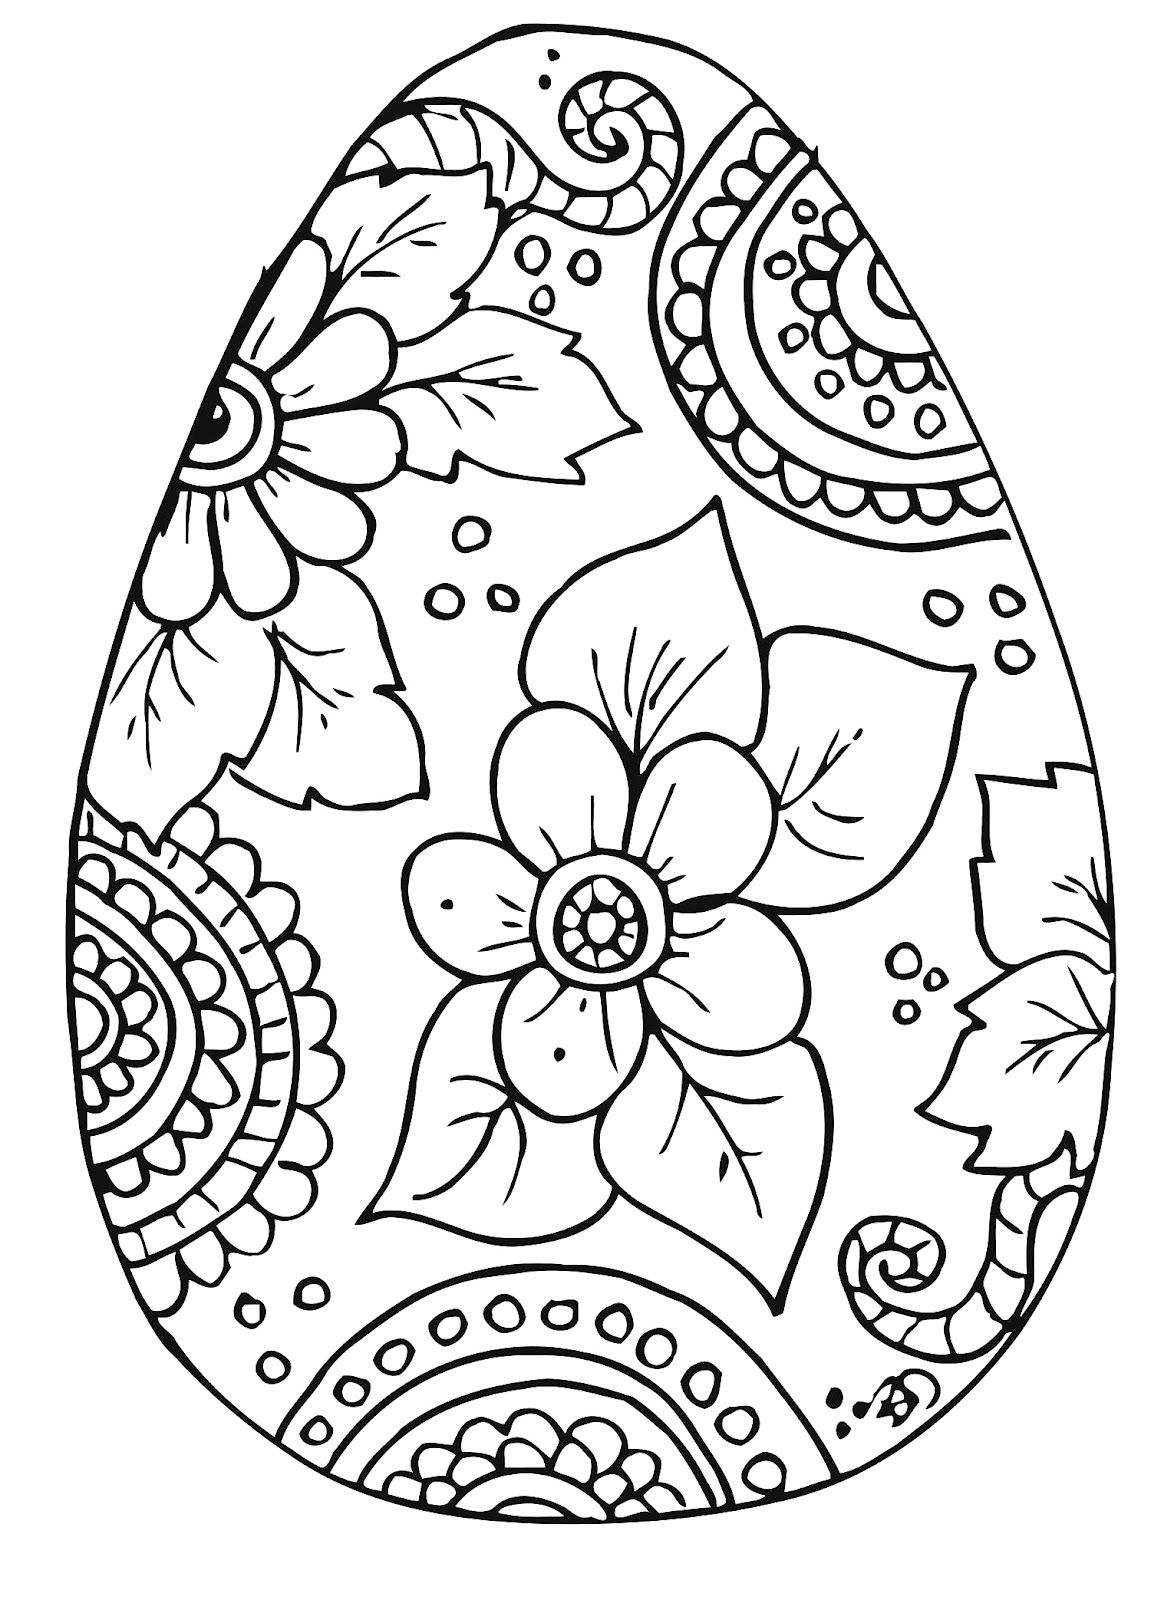 10 cool free printable Easter coloring pages for kids who\'ve moved ...